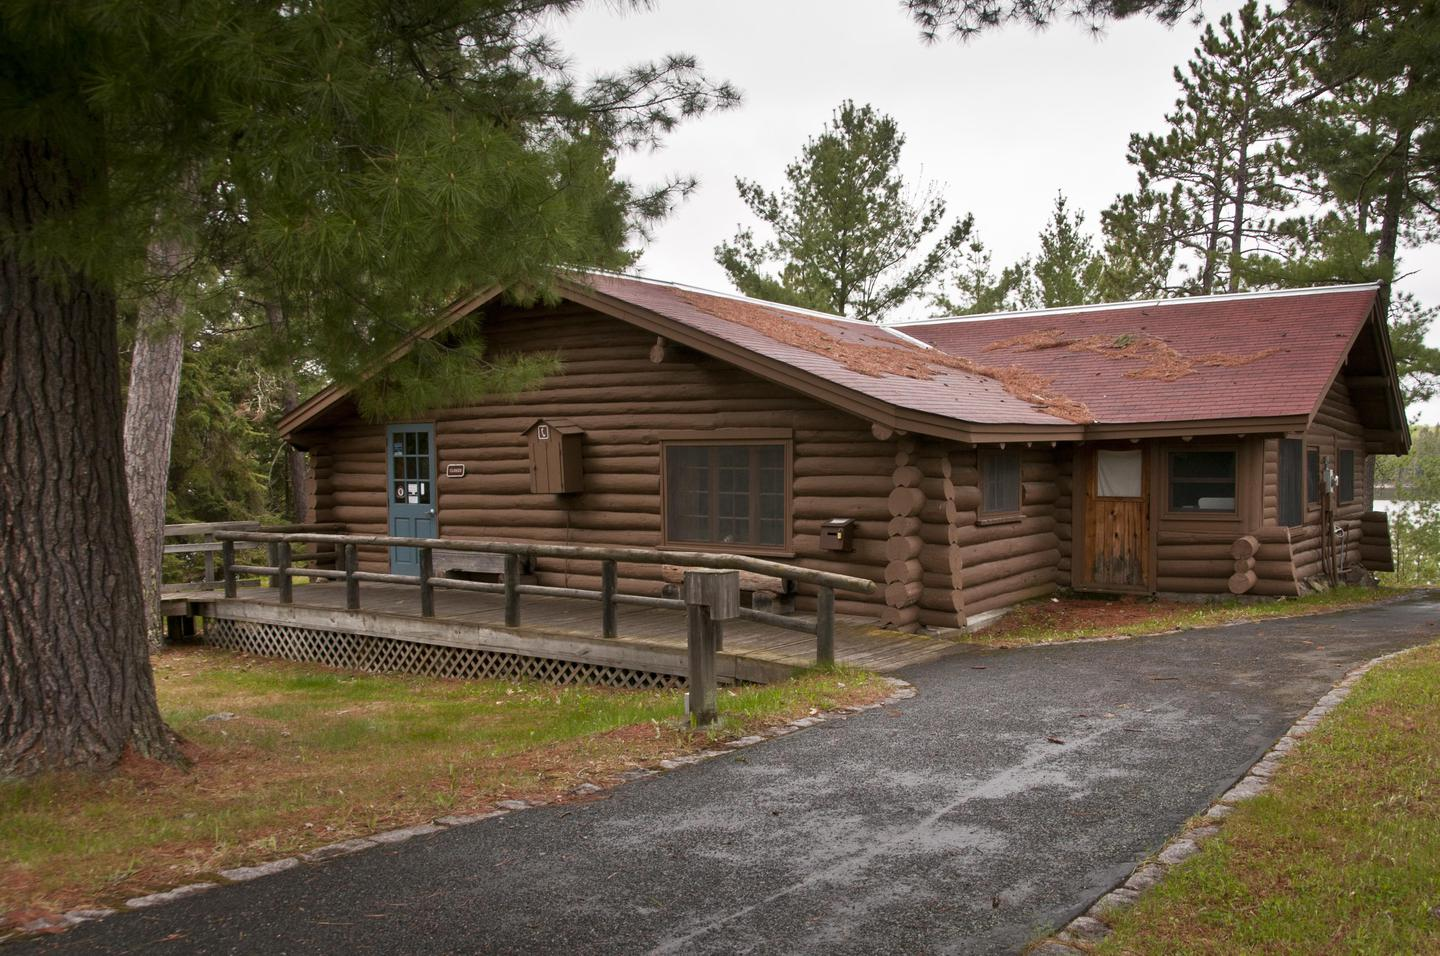 Ash River Visitor Center